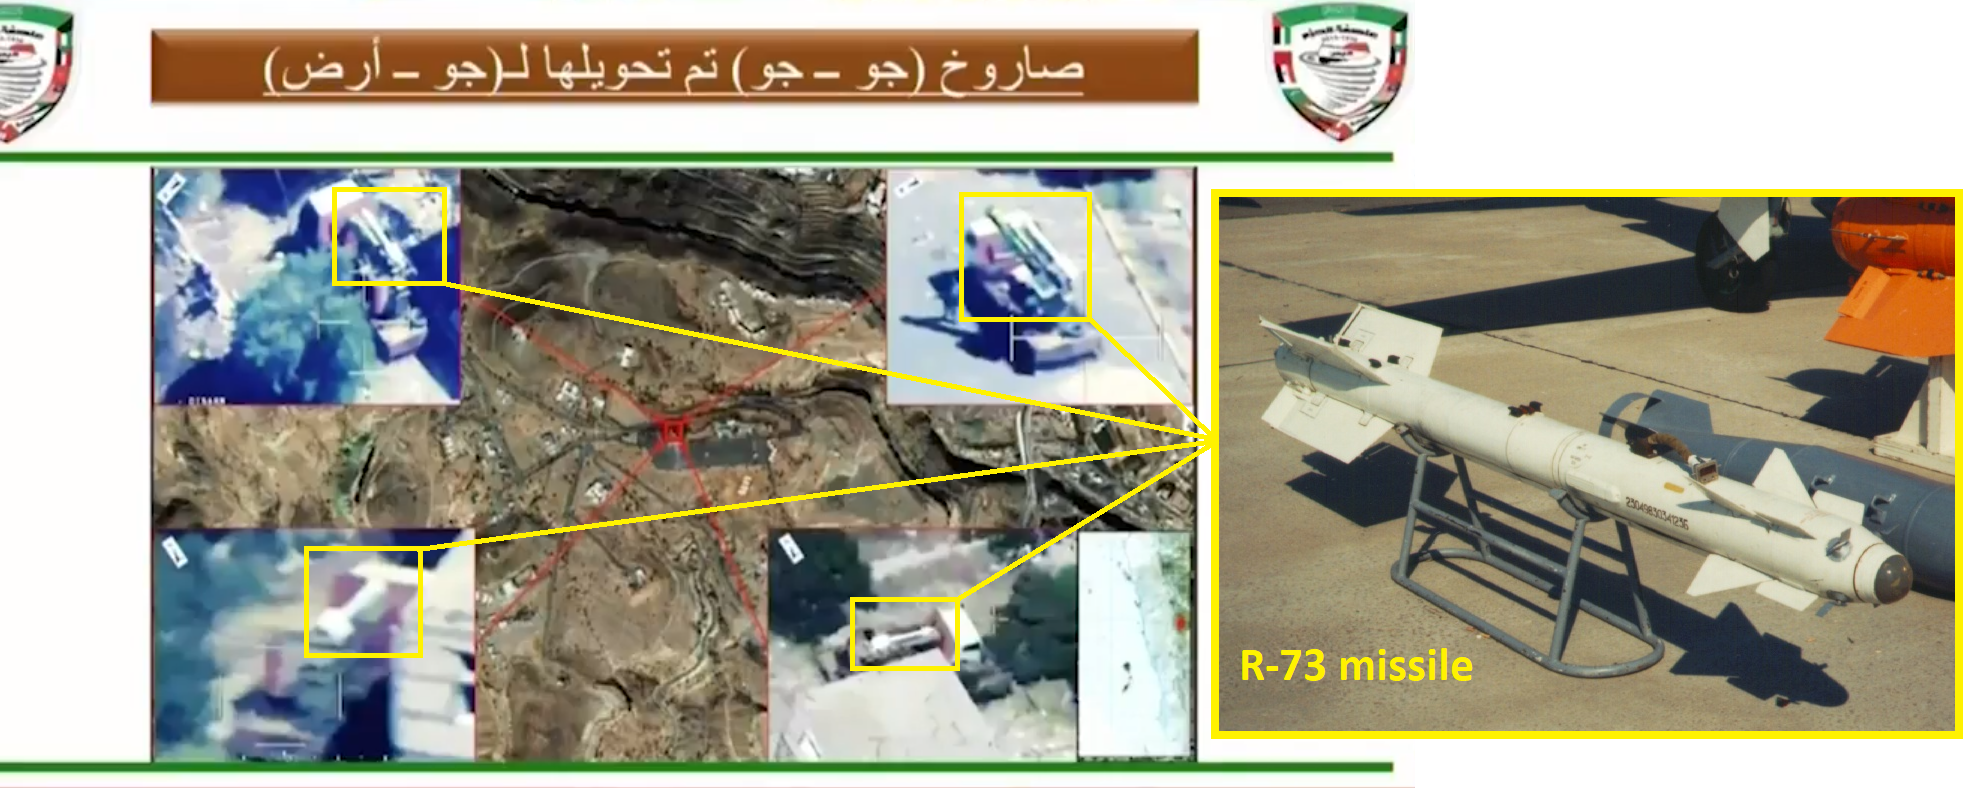 Houthis Release Video Of MQ-1 Drone Being Shot Down Over Sanaa